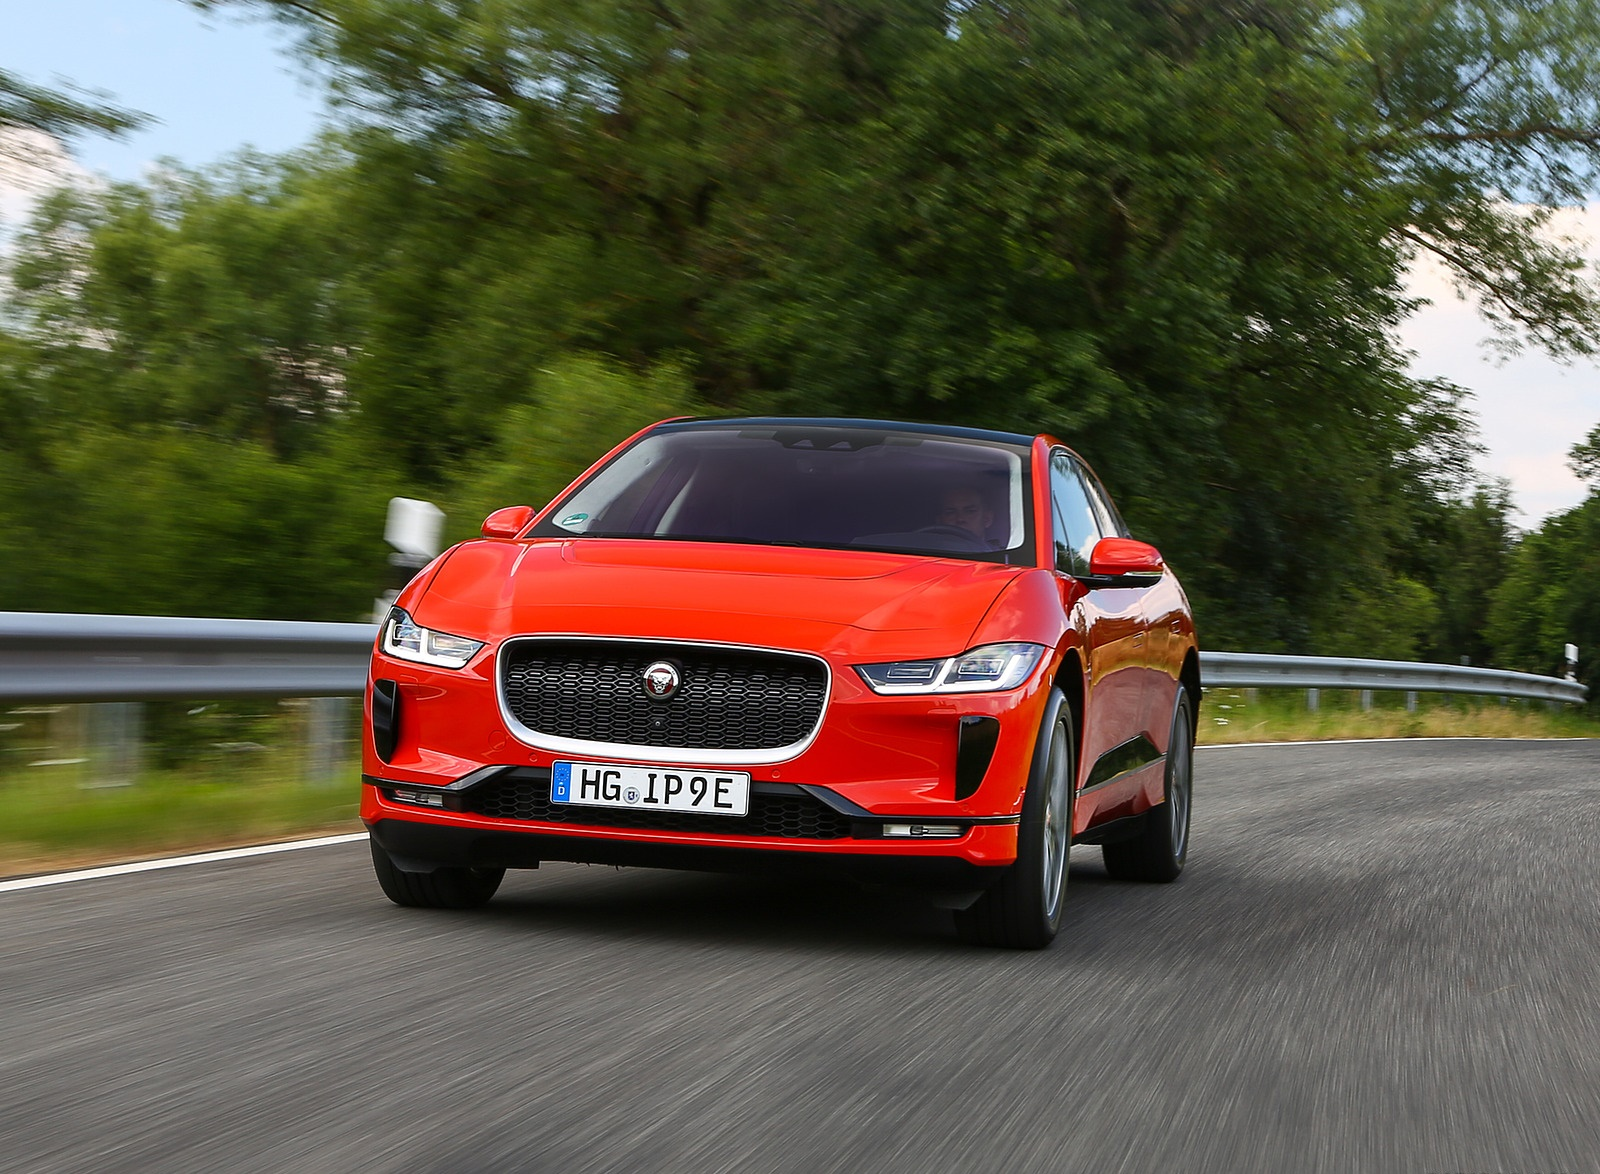 2019 Jaguar I-PACE EV400 AWD HSE First Edition (Color: Photon Red) Front Wallpapers #16 of 192